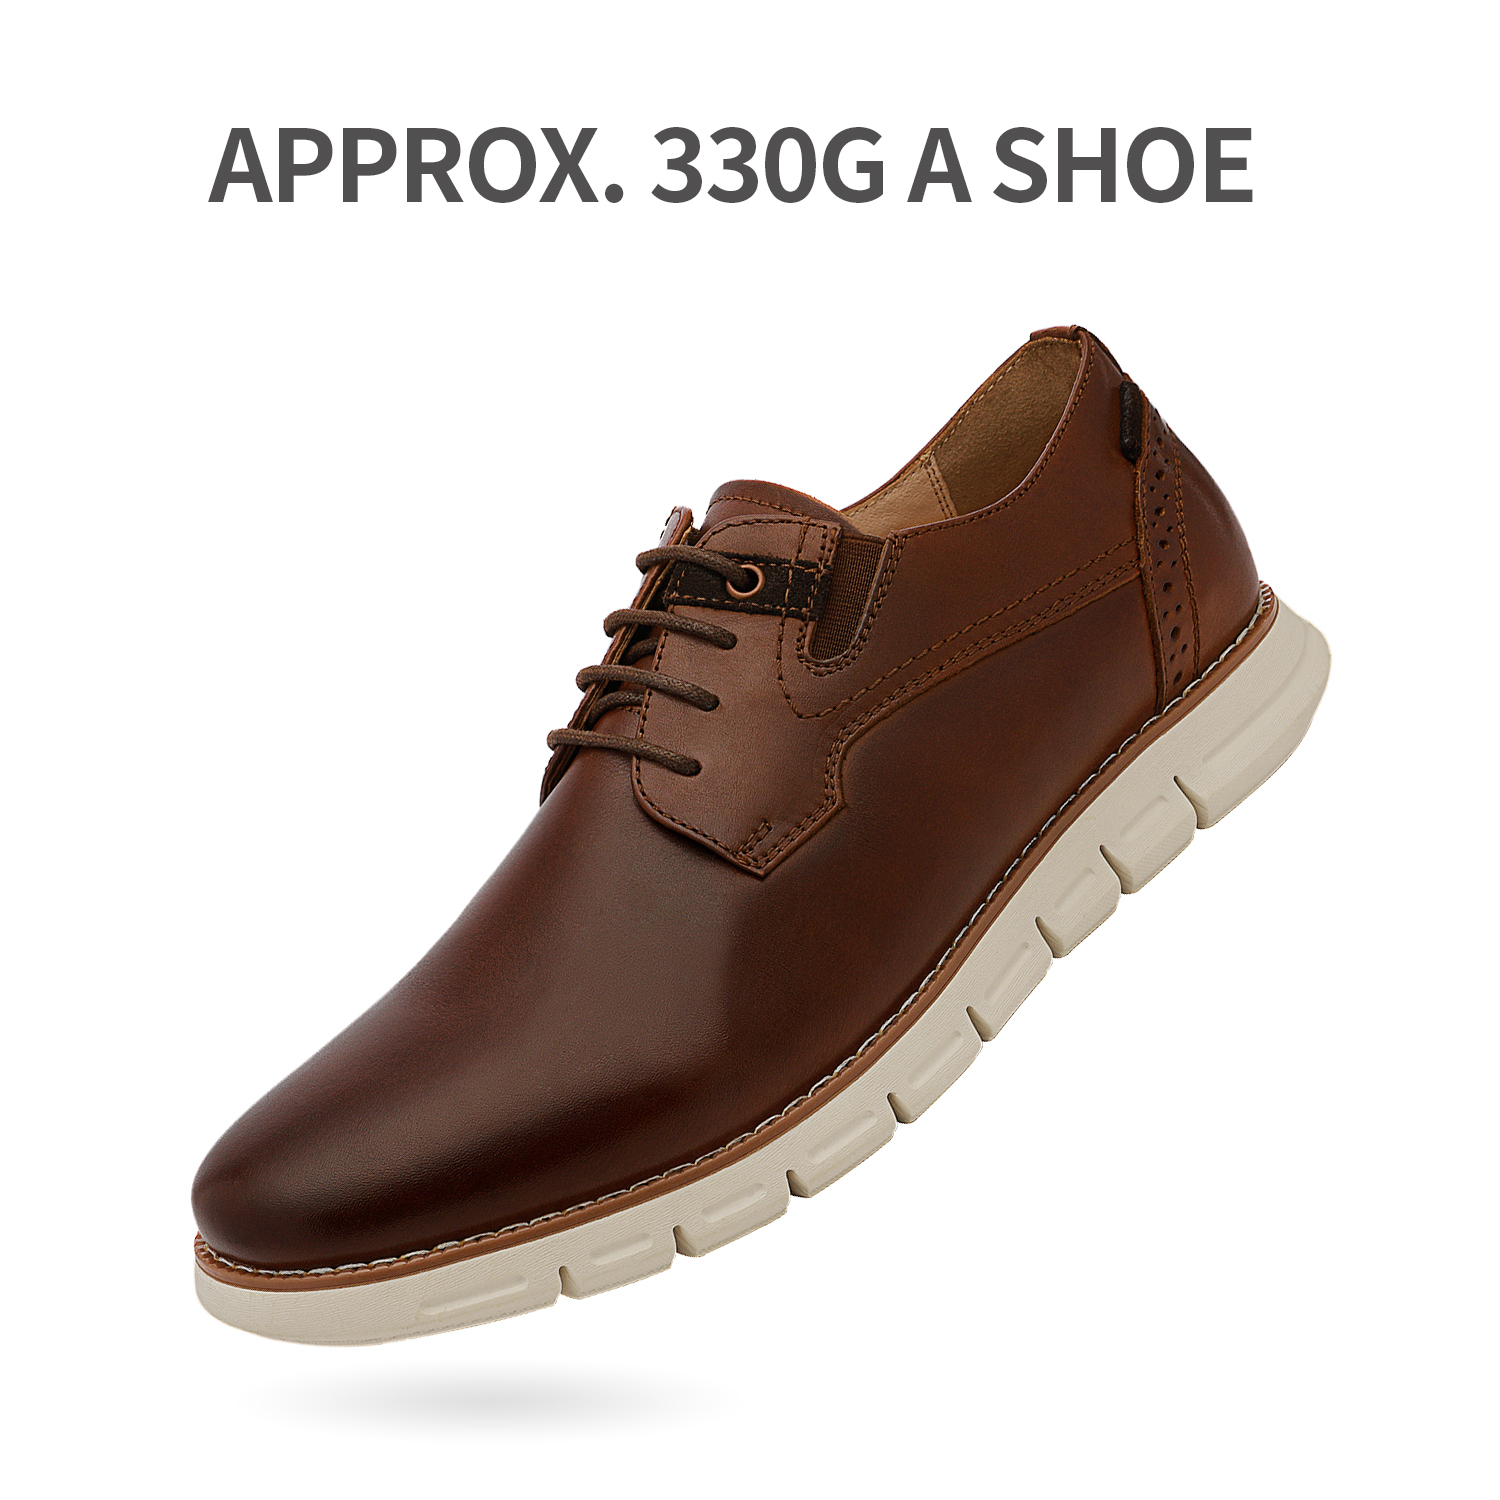 Men-s-Genuine-Leather-Casual-Formal-Sneakers-Lace-up-Business-Oxford-Dress-Shoes thumbnail 49